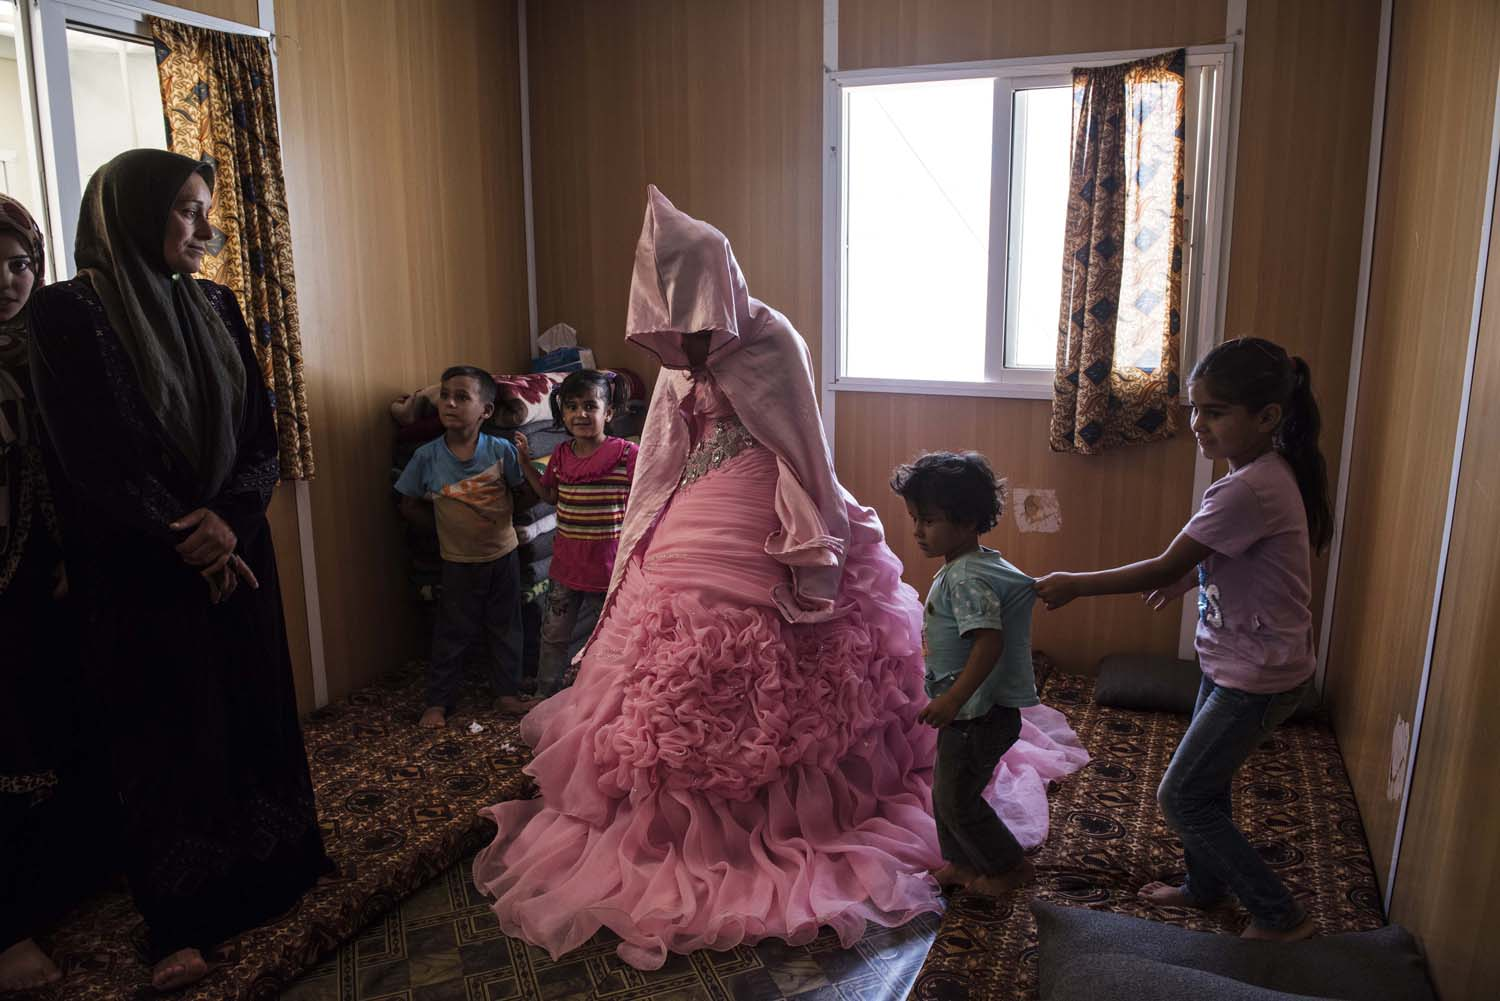 Rahaf Yousef, 13, a Syrian refugee from Dara'a, at her family's home in the Zaatari camp in Jordan on the day of her engagement party in August.